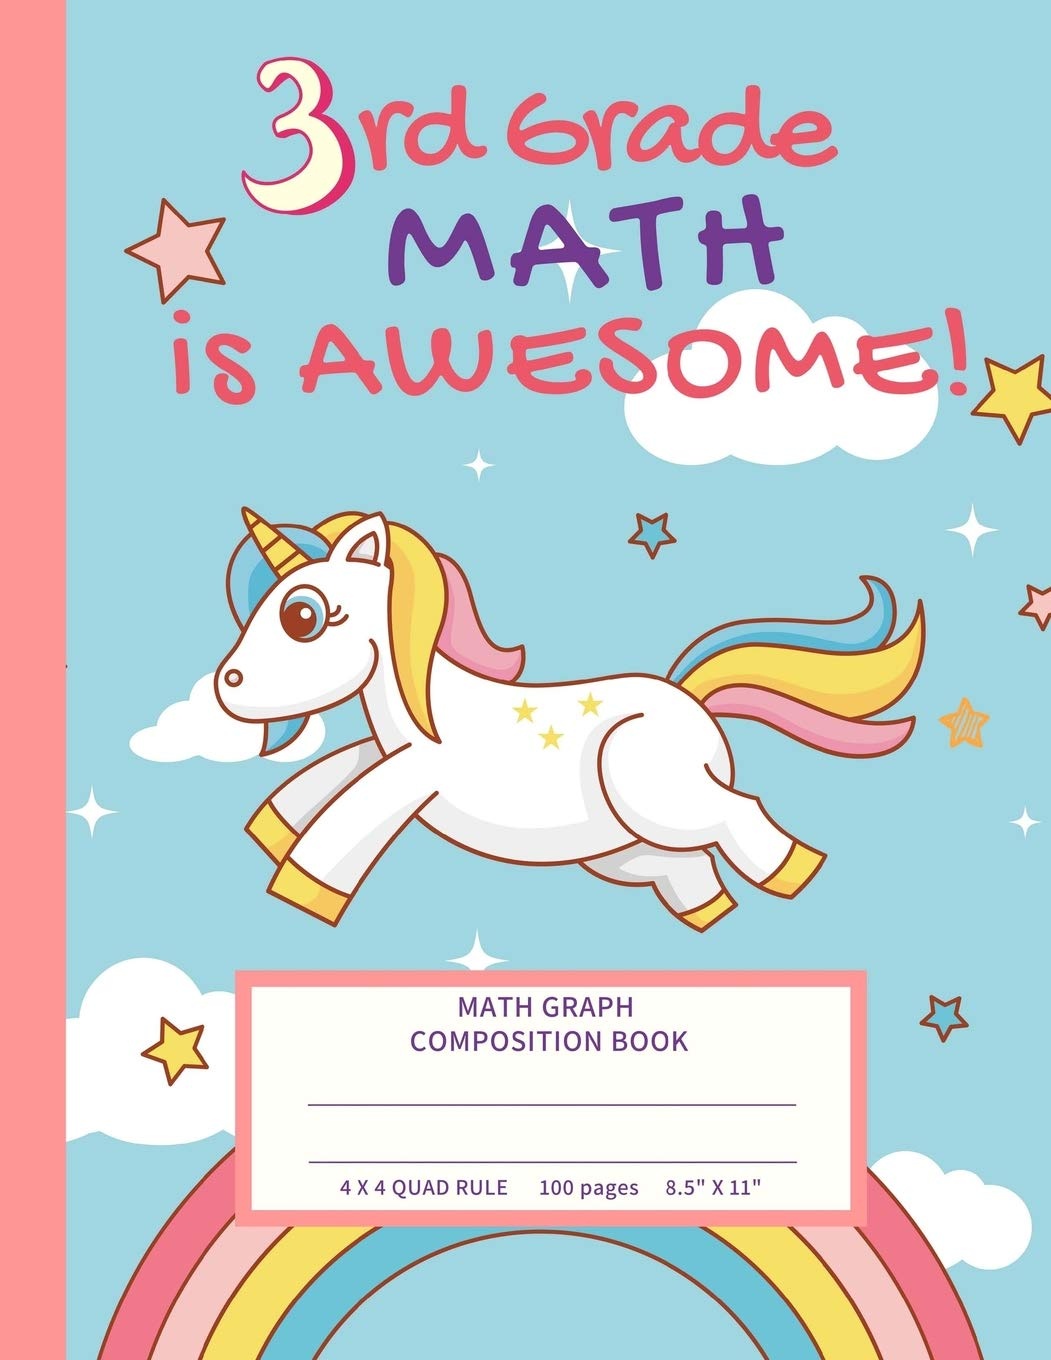 - 3rd Grade Math Is Awesome!: Unicorn Math Graph Composition Book, 4